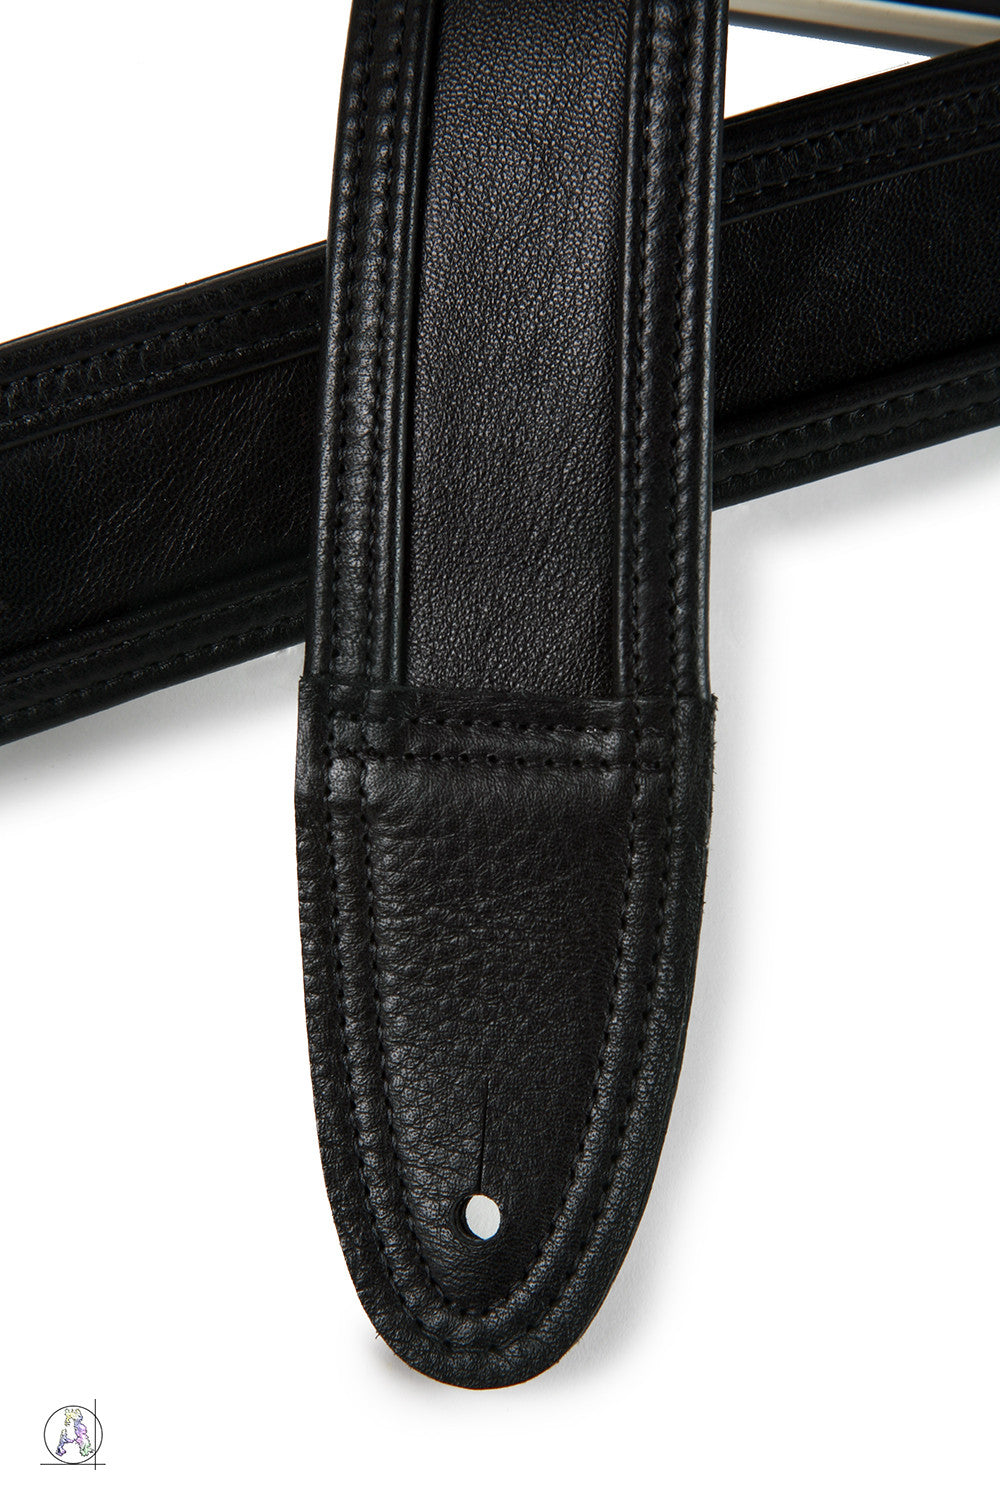 Blackheart 80 - Soft Cabretta Leather and Black Cowhide Guitar Strap